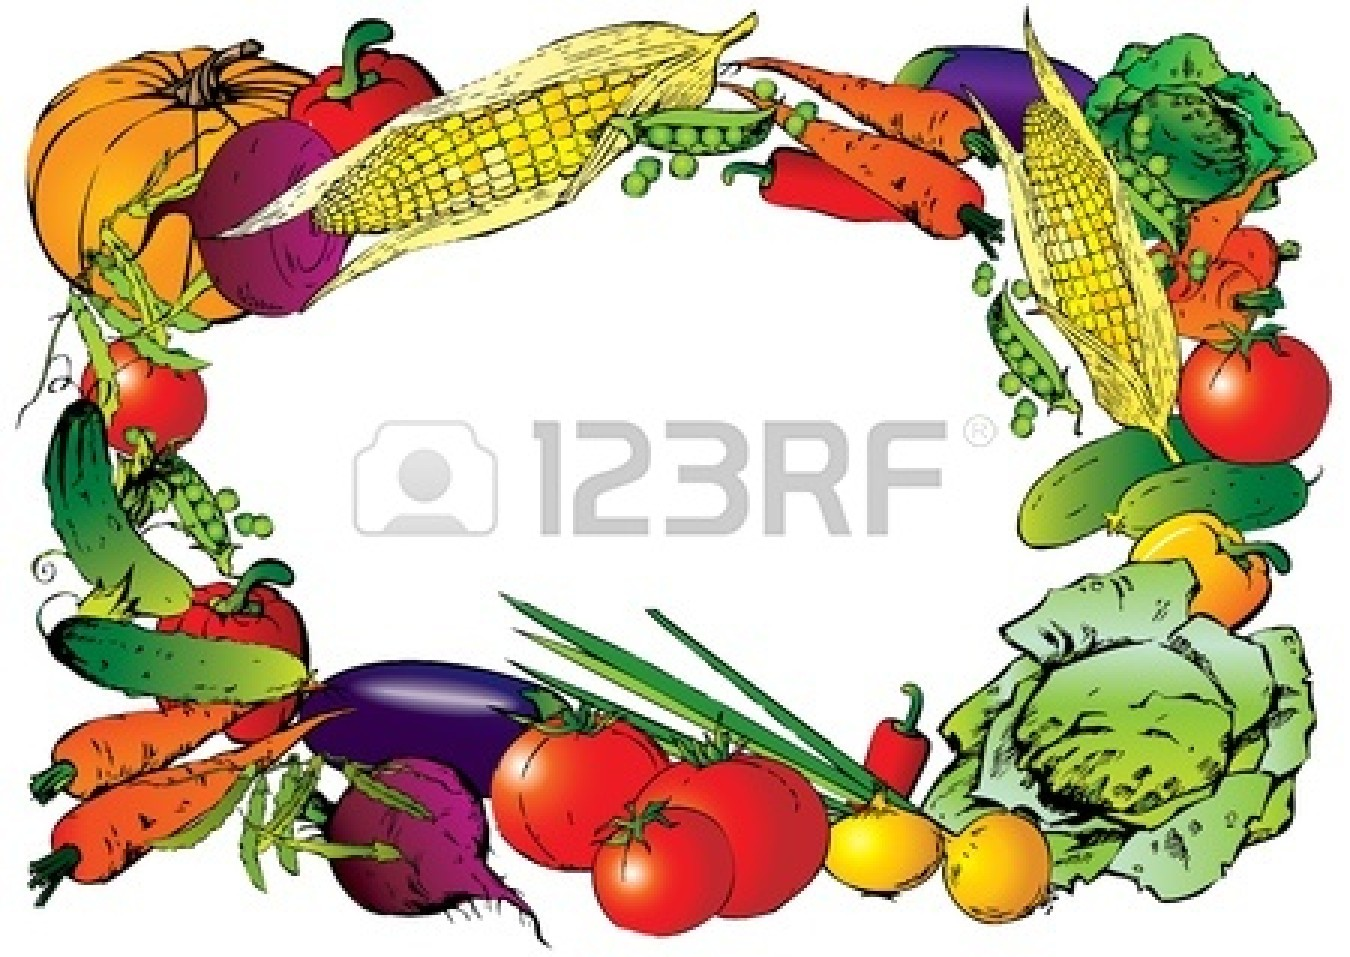 Vegetable garden graphic - Vegetable 20garden 20graphic